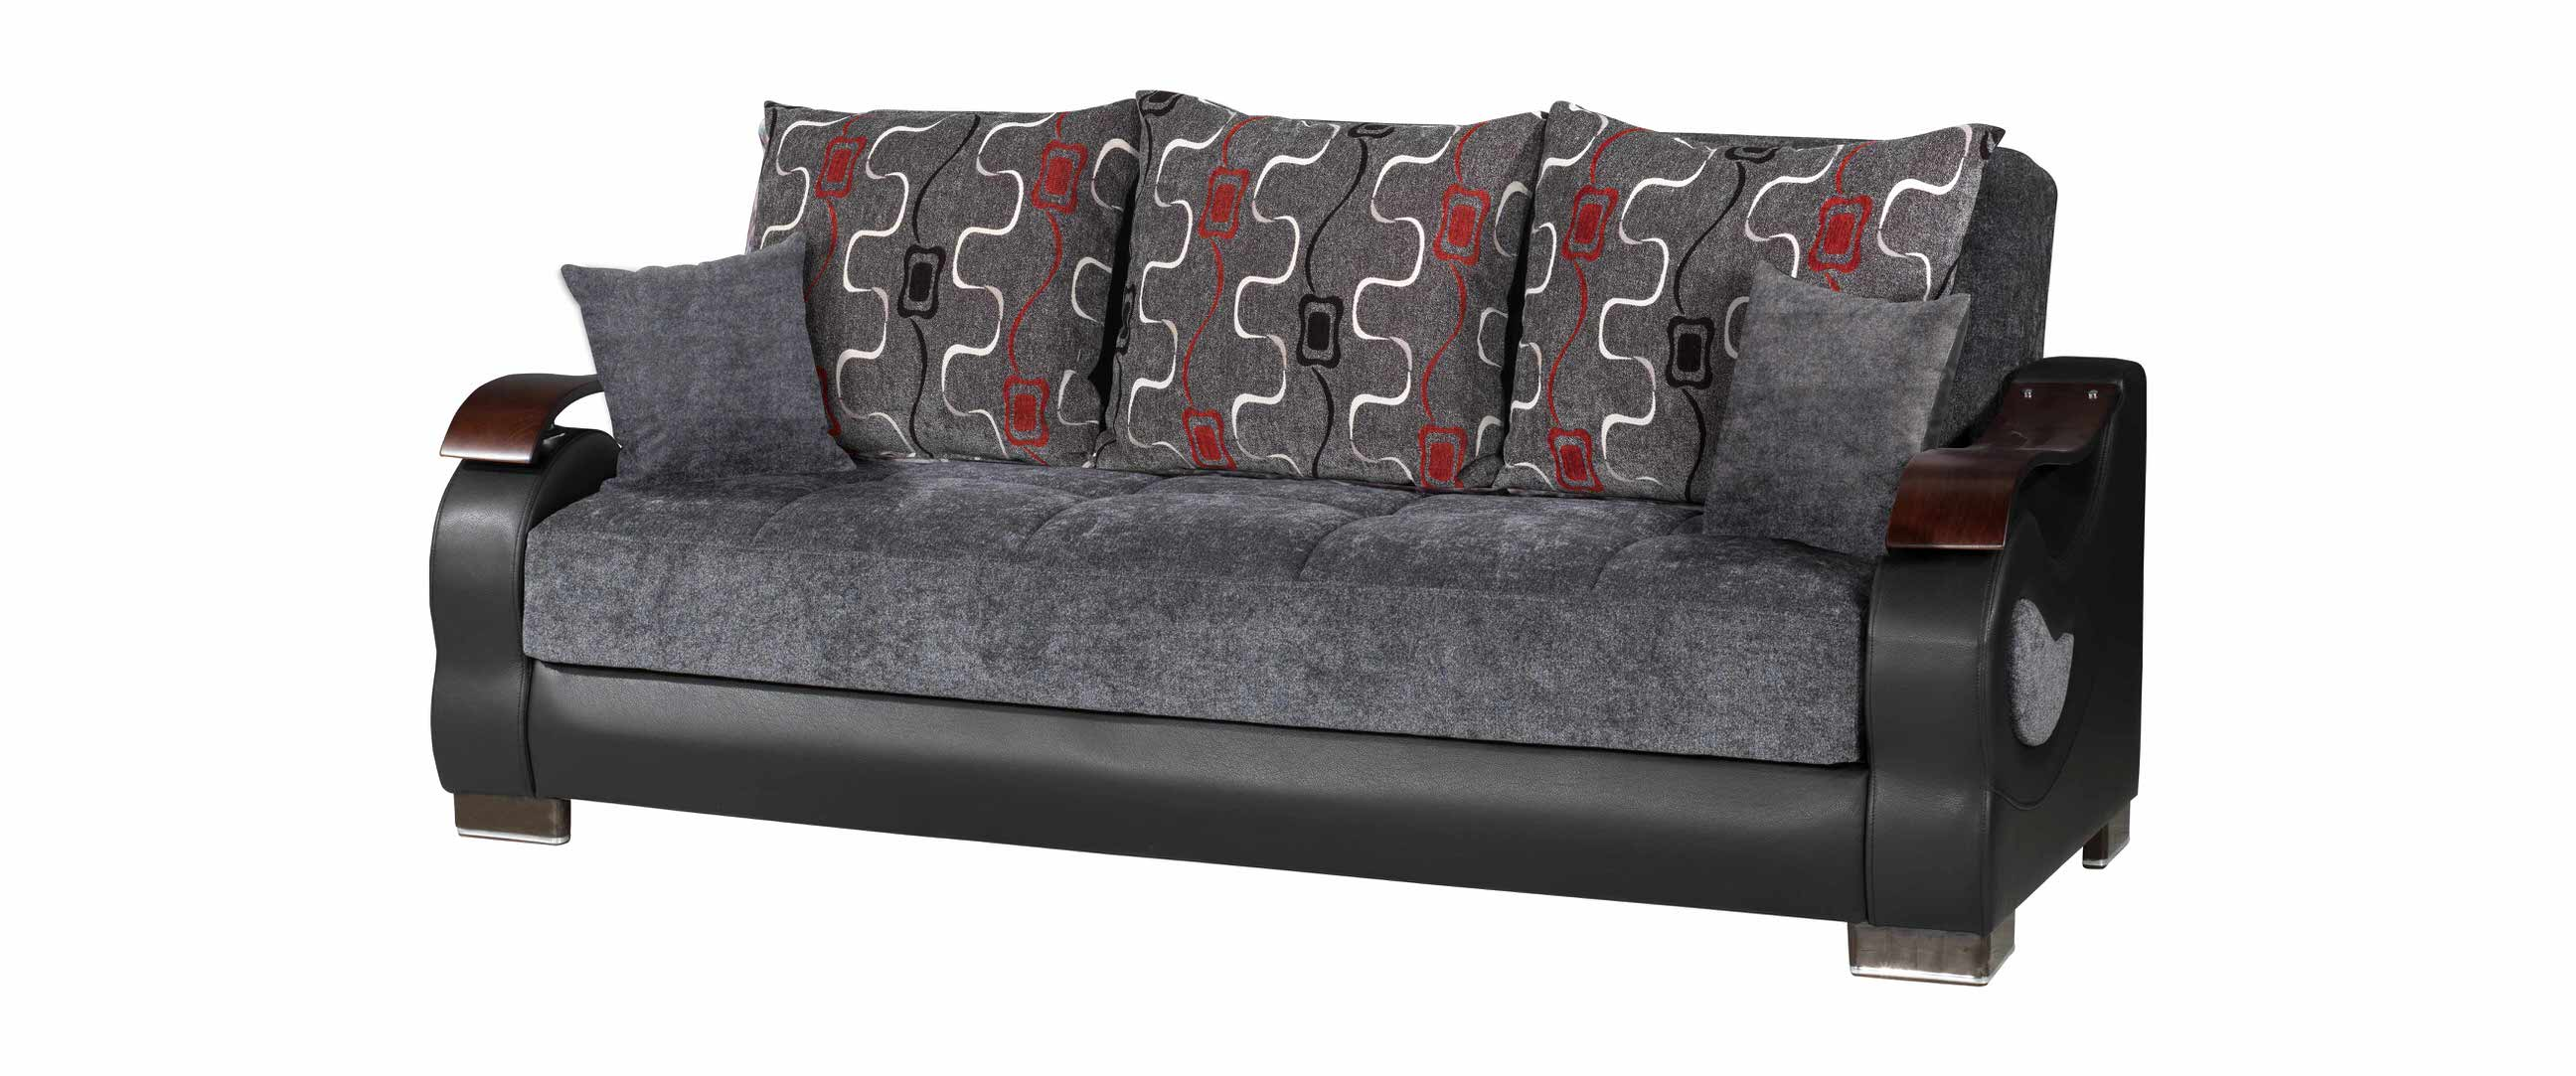 Metroplex Gray Chenille Sofa Bed by Casamode